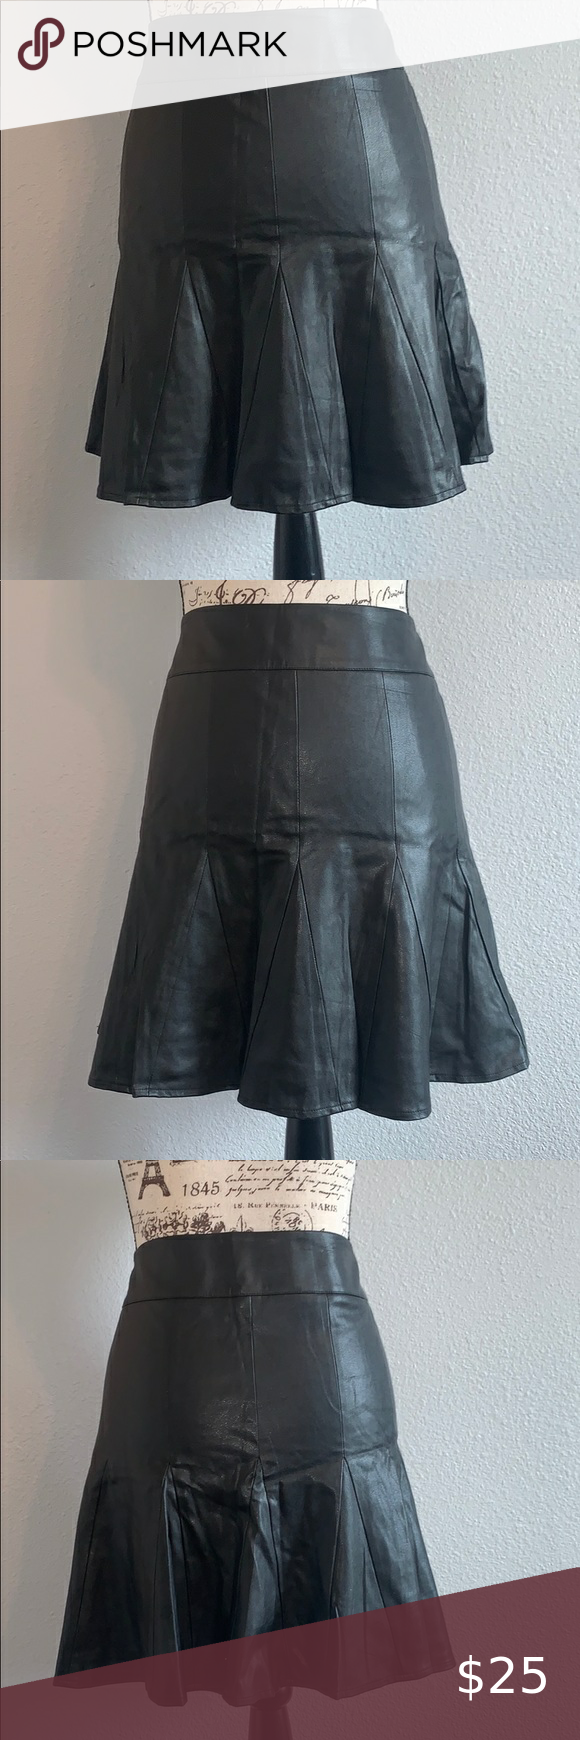 Ann Taylor faux leather skirt.  3/ 0289 Ann Taylor faux leather  skirt with a small flare 18. In. Length .  Side zipper in good working order.Good pre owned condition. Small marks on the waist line from the hanger grips. ( see pics) Ann Taylor Skirts